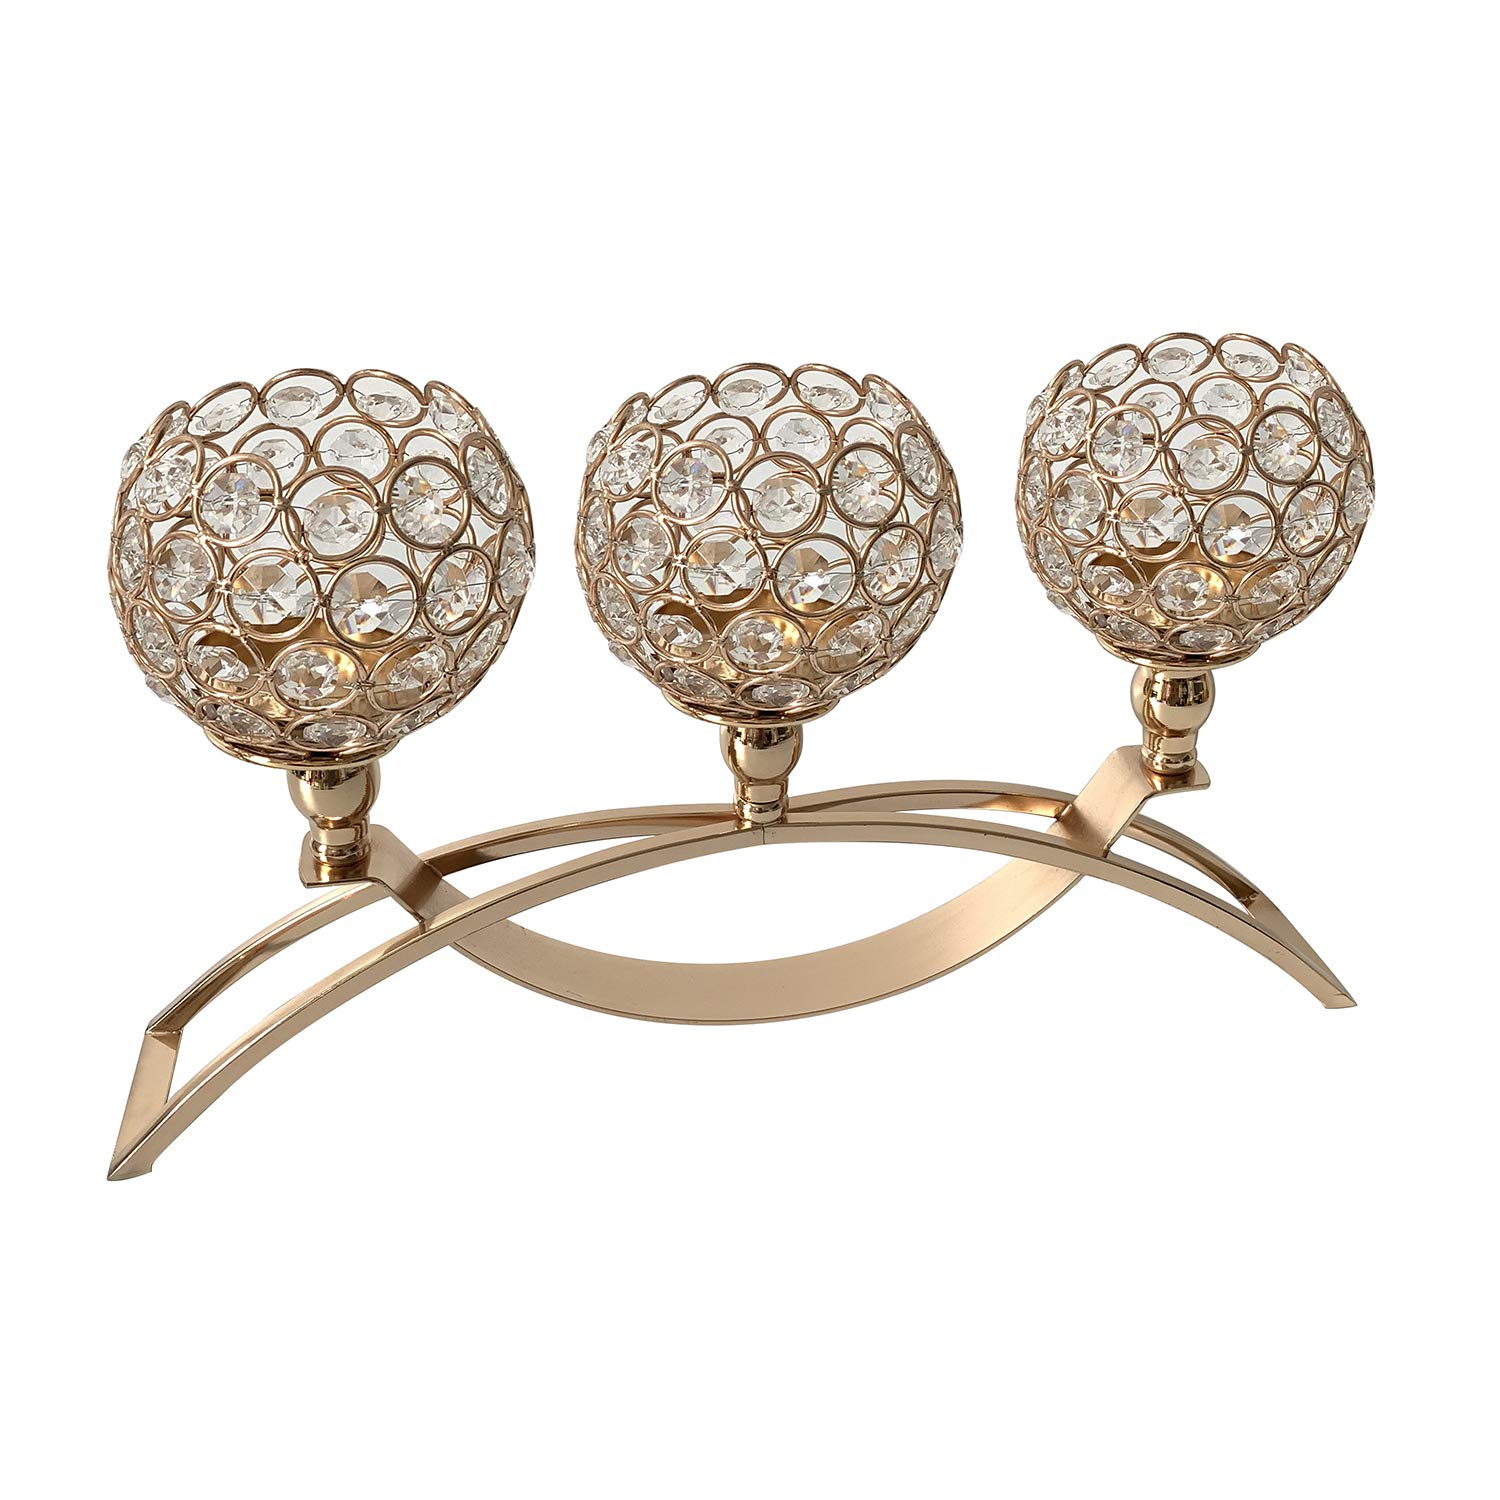 Gold Fortune Crystal Candle Holders Stand with 3 Candelabras for Coffee Table Living Room and Dinning Room Table Decorative Centerpieces (Gold) by Gold Fortune